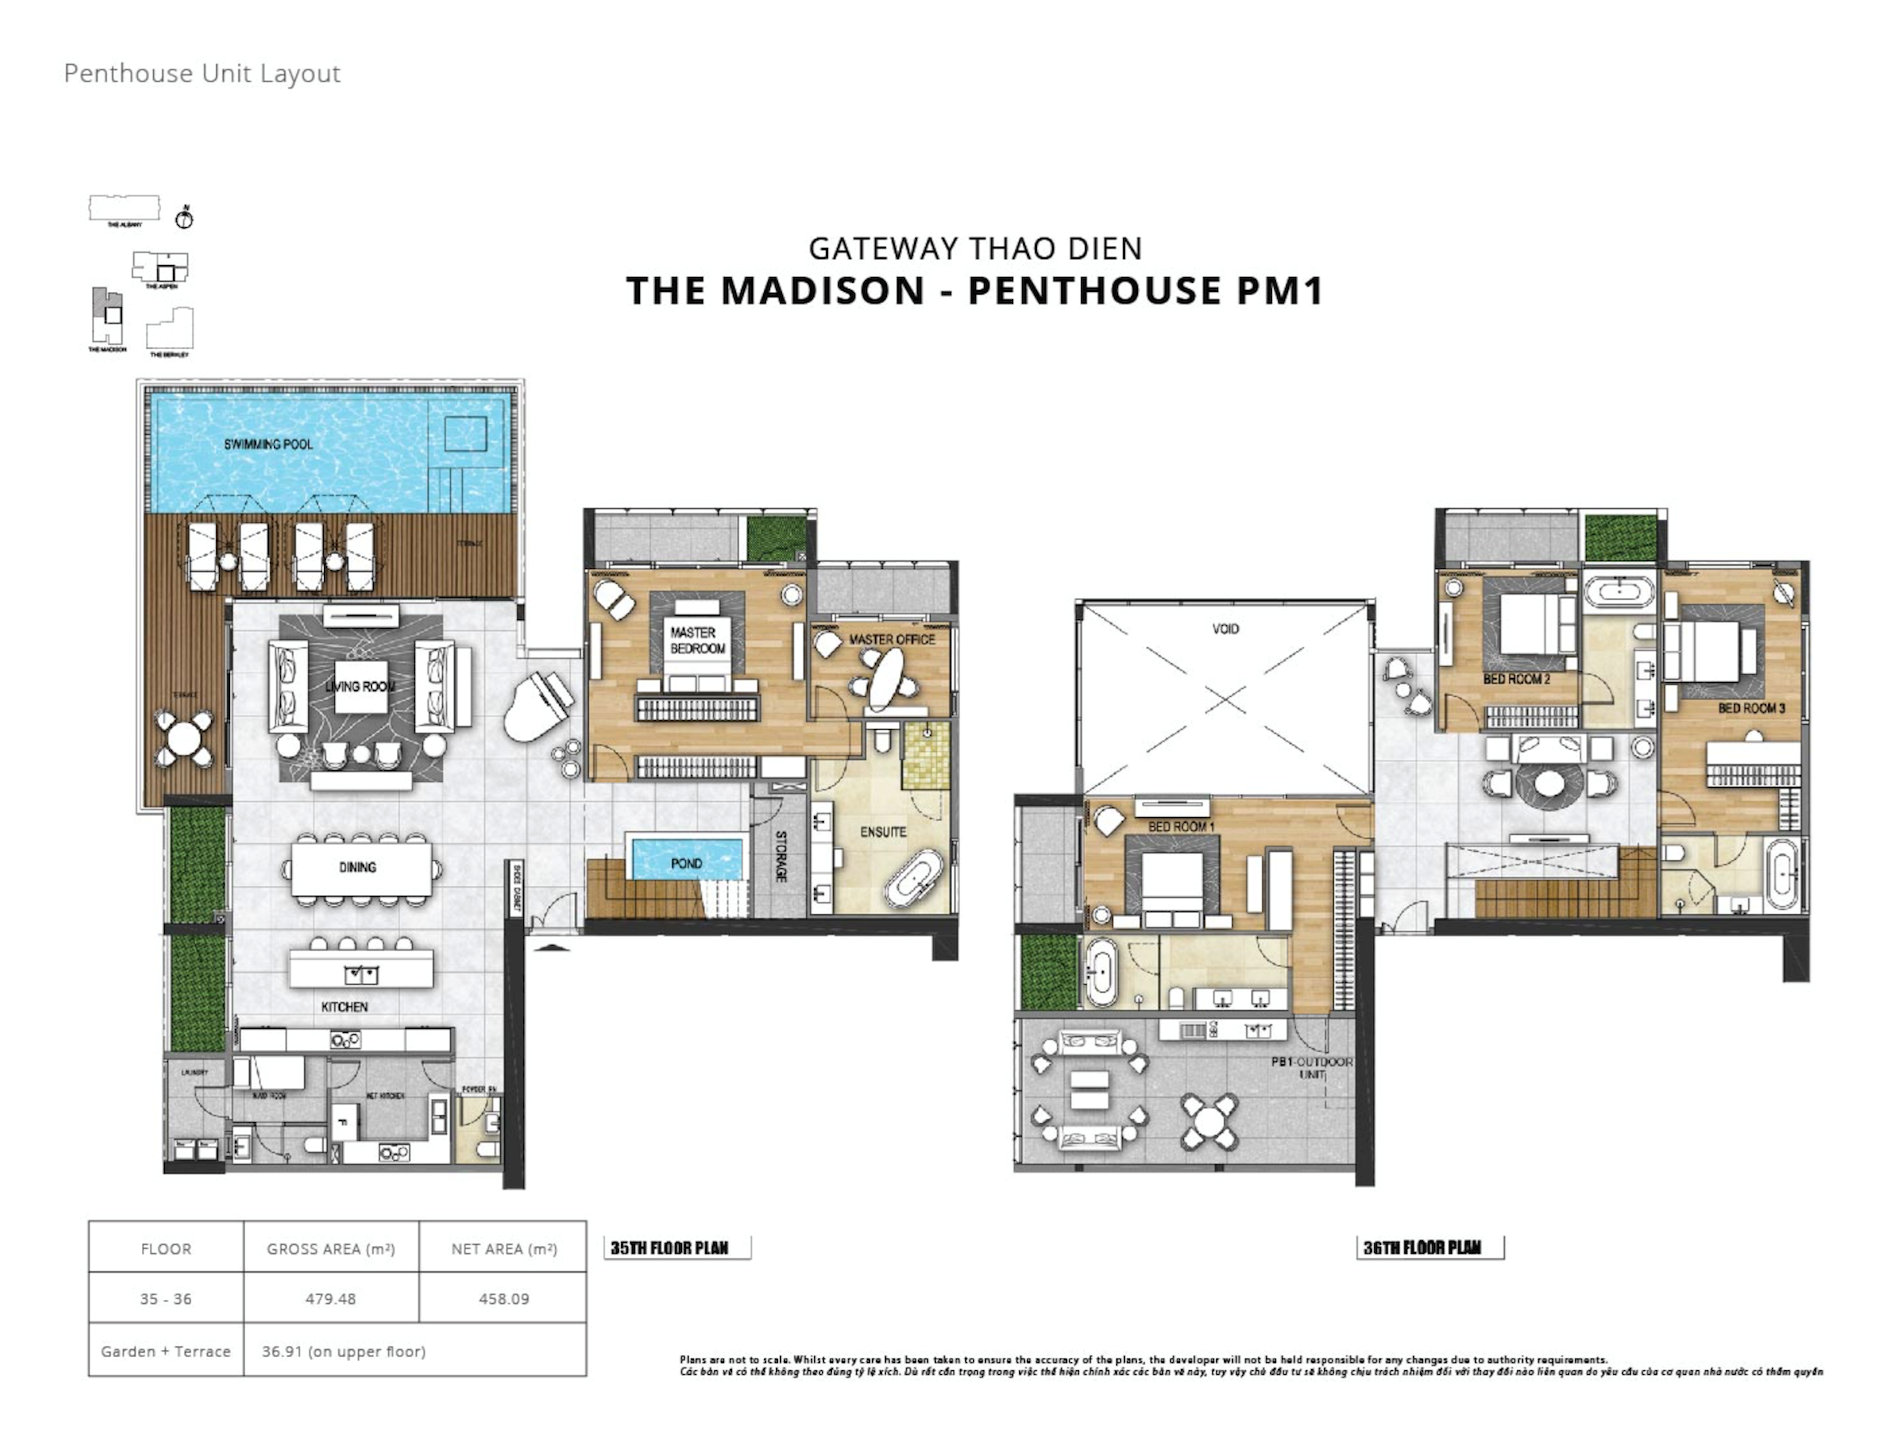 https://www.saos.vn/Uploads/t/pe/penthouse-gateway-thao-dien-duplex-penthouse-the-madison-pm1_0014023.png